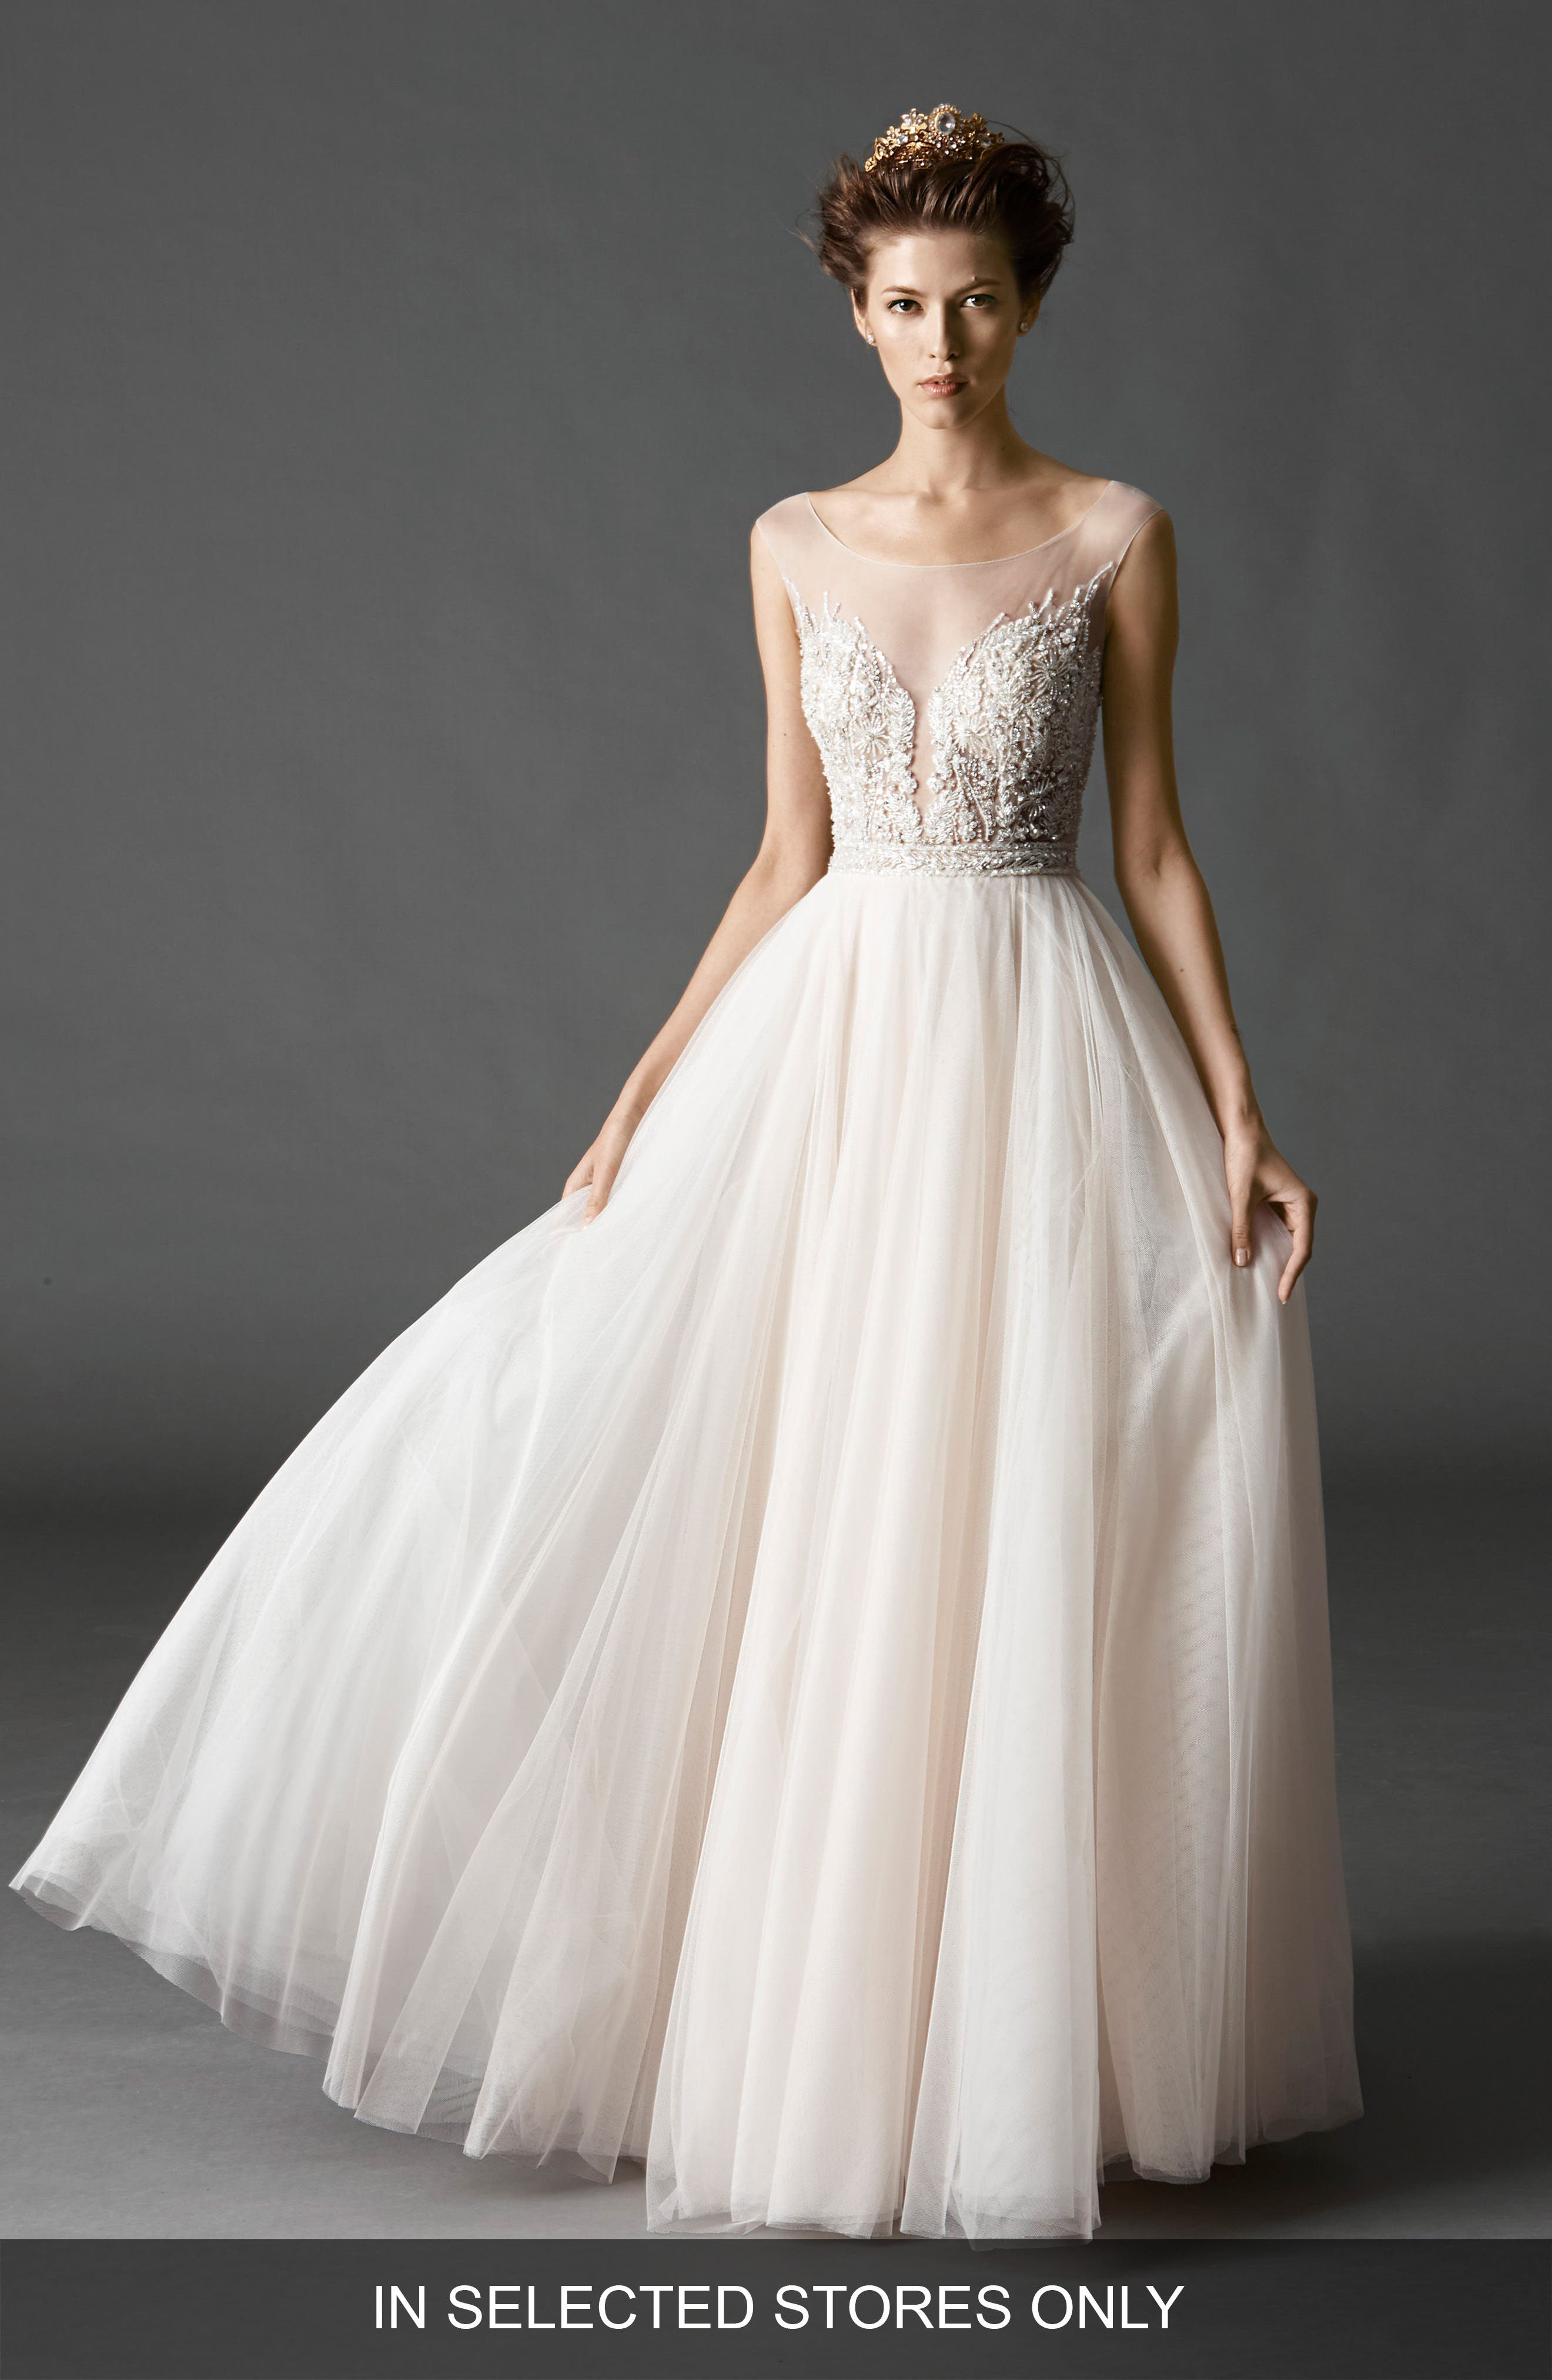 Kaliah Embroidered A-Line Gown,                             Main thumbnail 1, color,                             Light Nude/ Whisper Pink